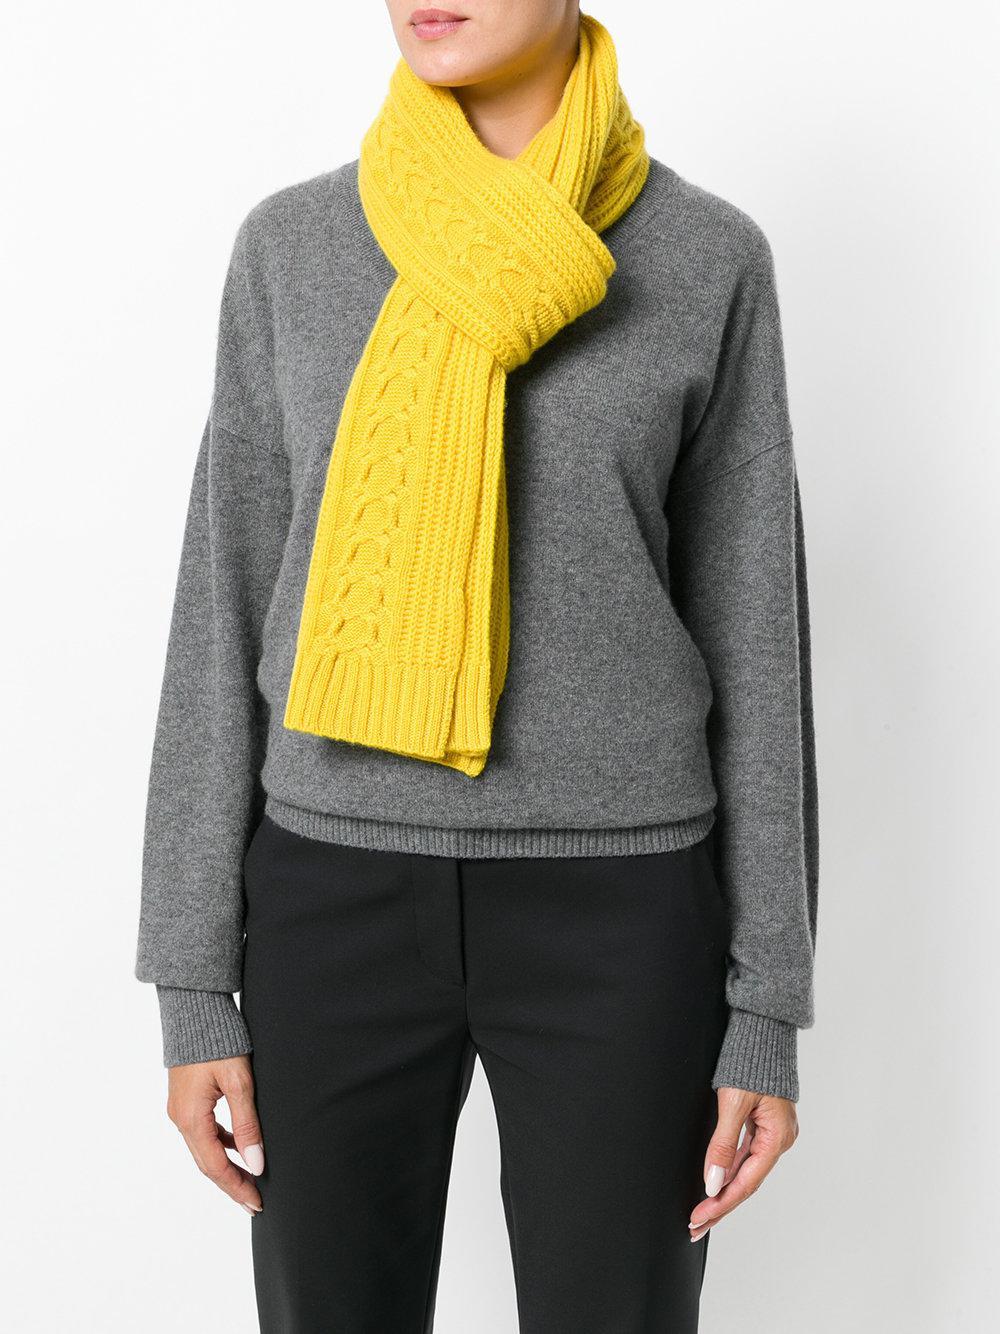 New Lyst N Peal Cashmere Wide Cable Knit Scarf In Yellow Cable Knit Scarf Of Delightful 48 Ideas Cable Knit Scarf